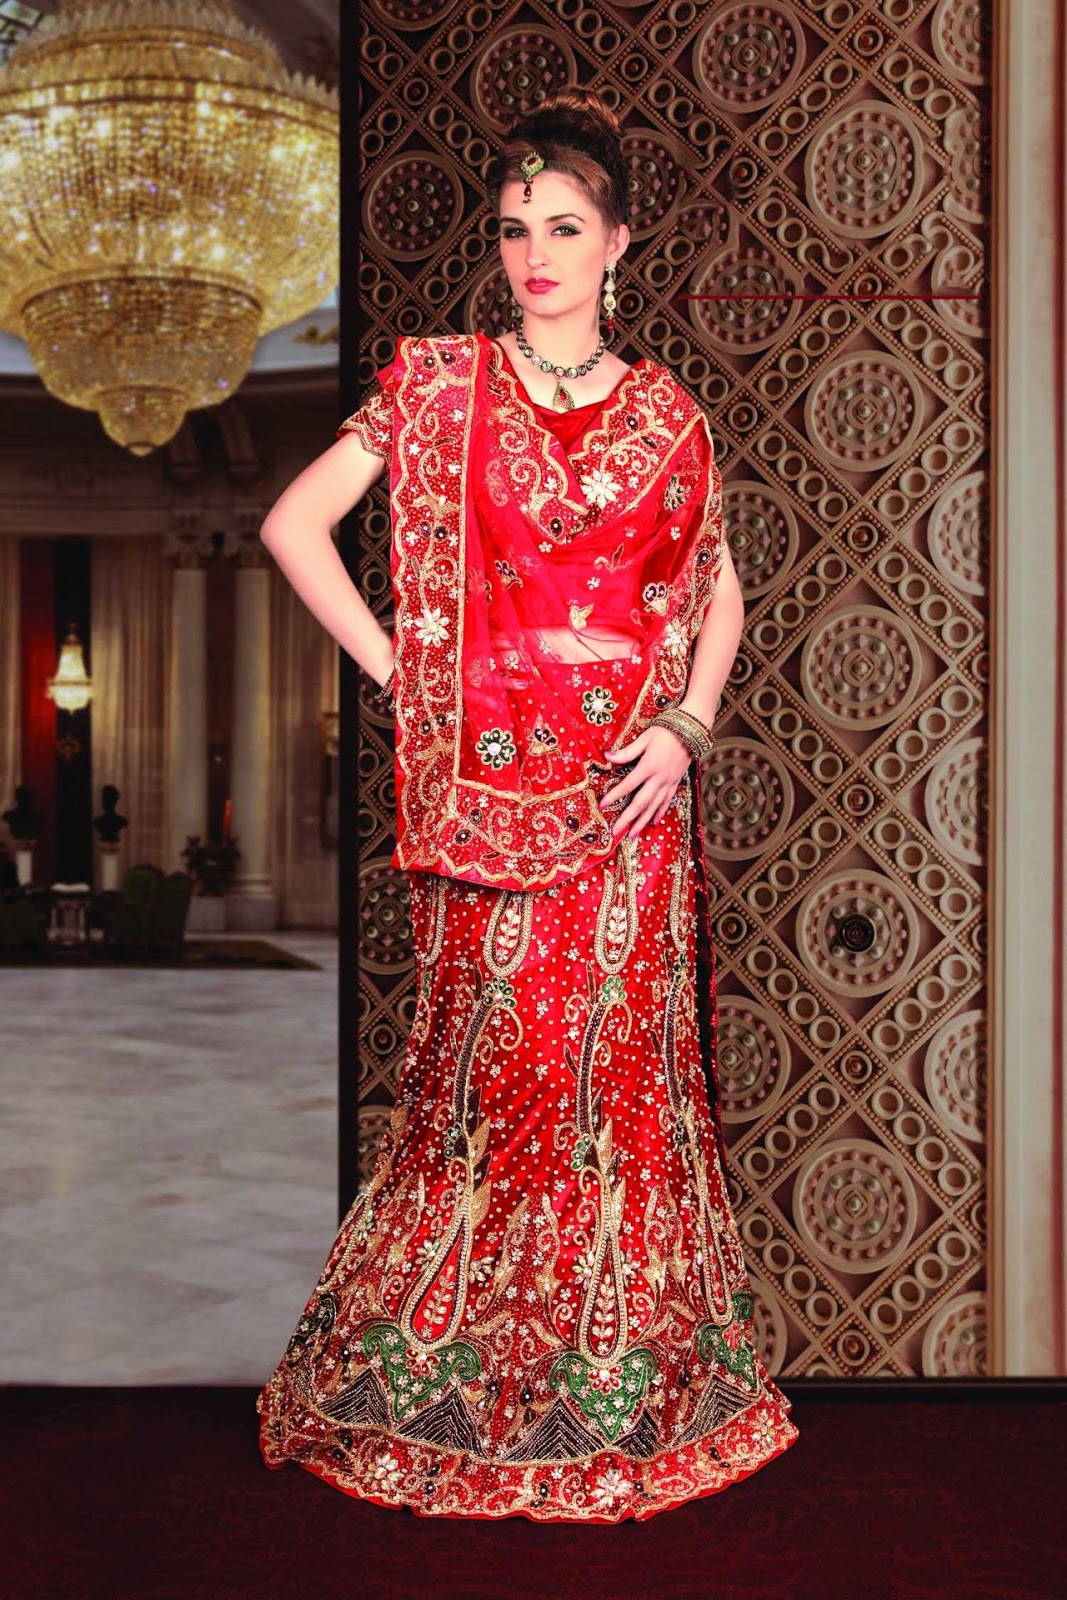 Indian wedding dresses dressed up girl for Wedding dresses online in india